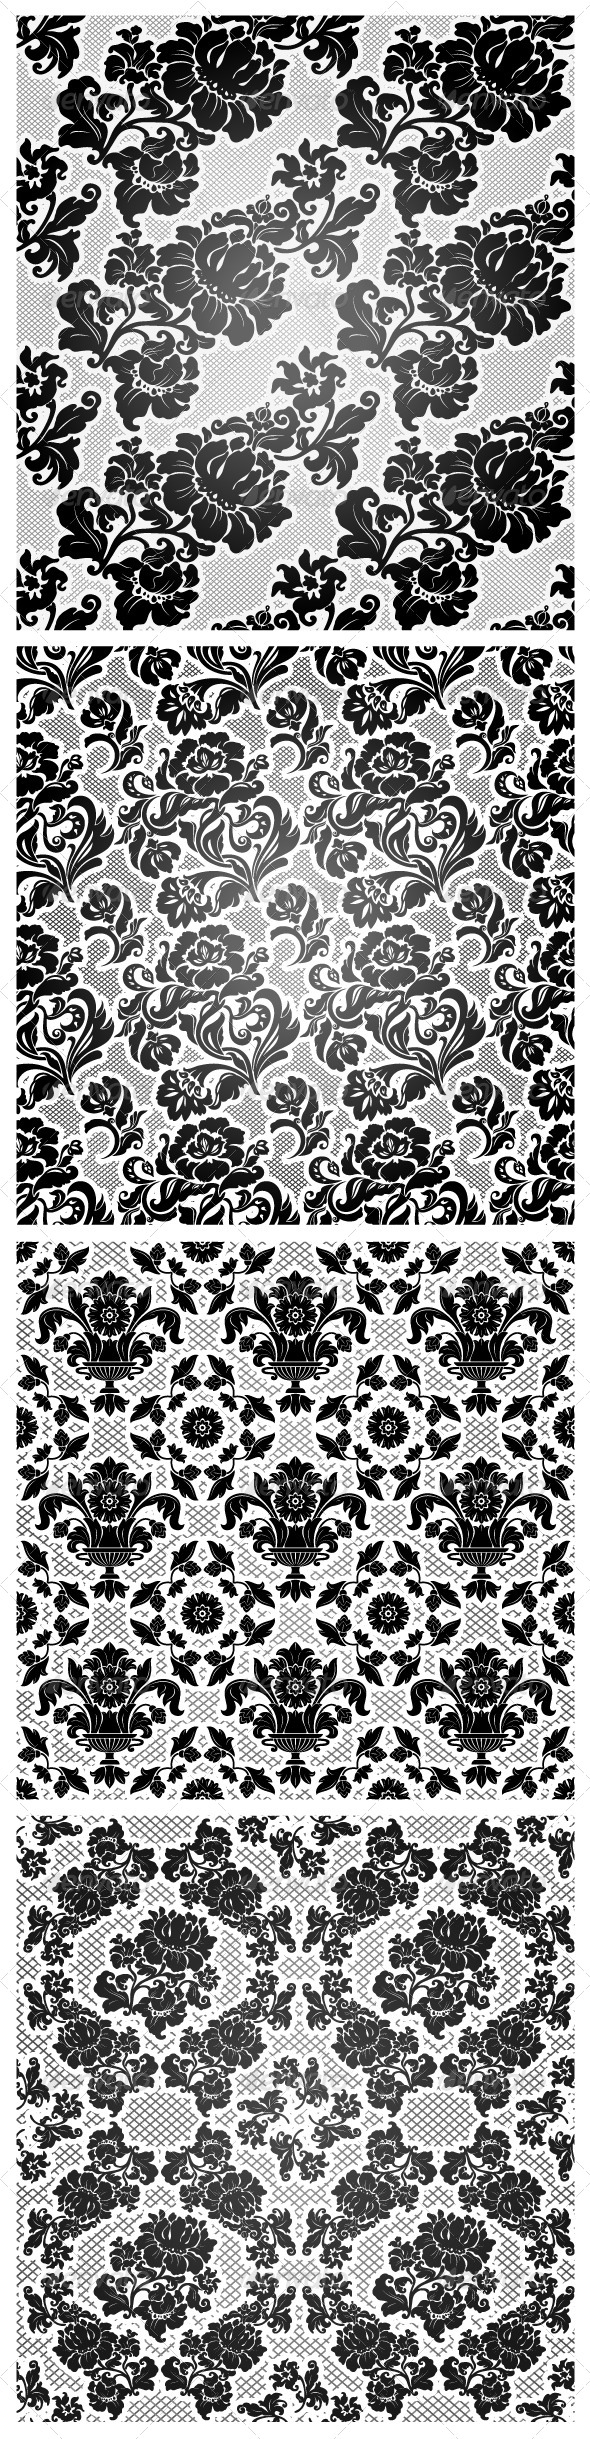 4 Lace Background, Ornamental Flowers Wallpaper - Backgrounds Decorative